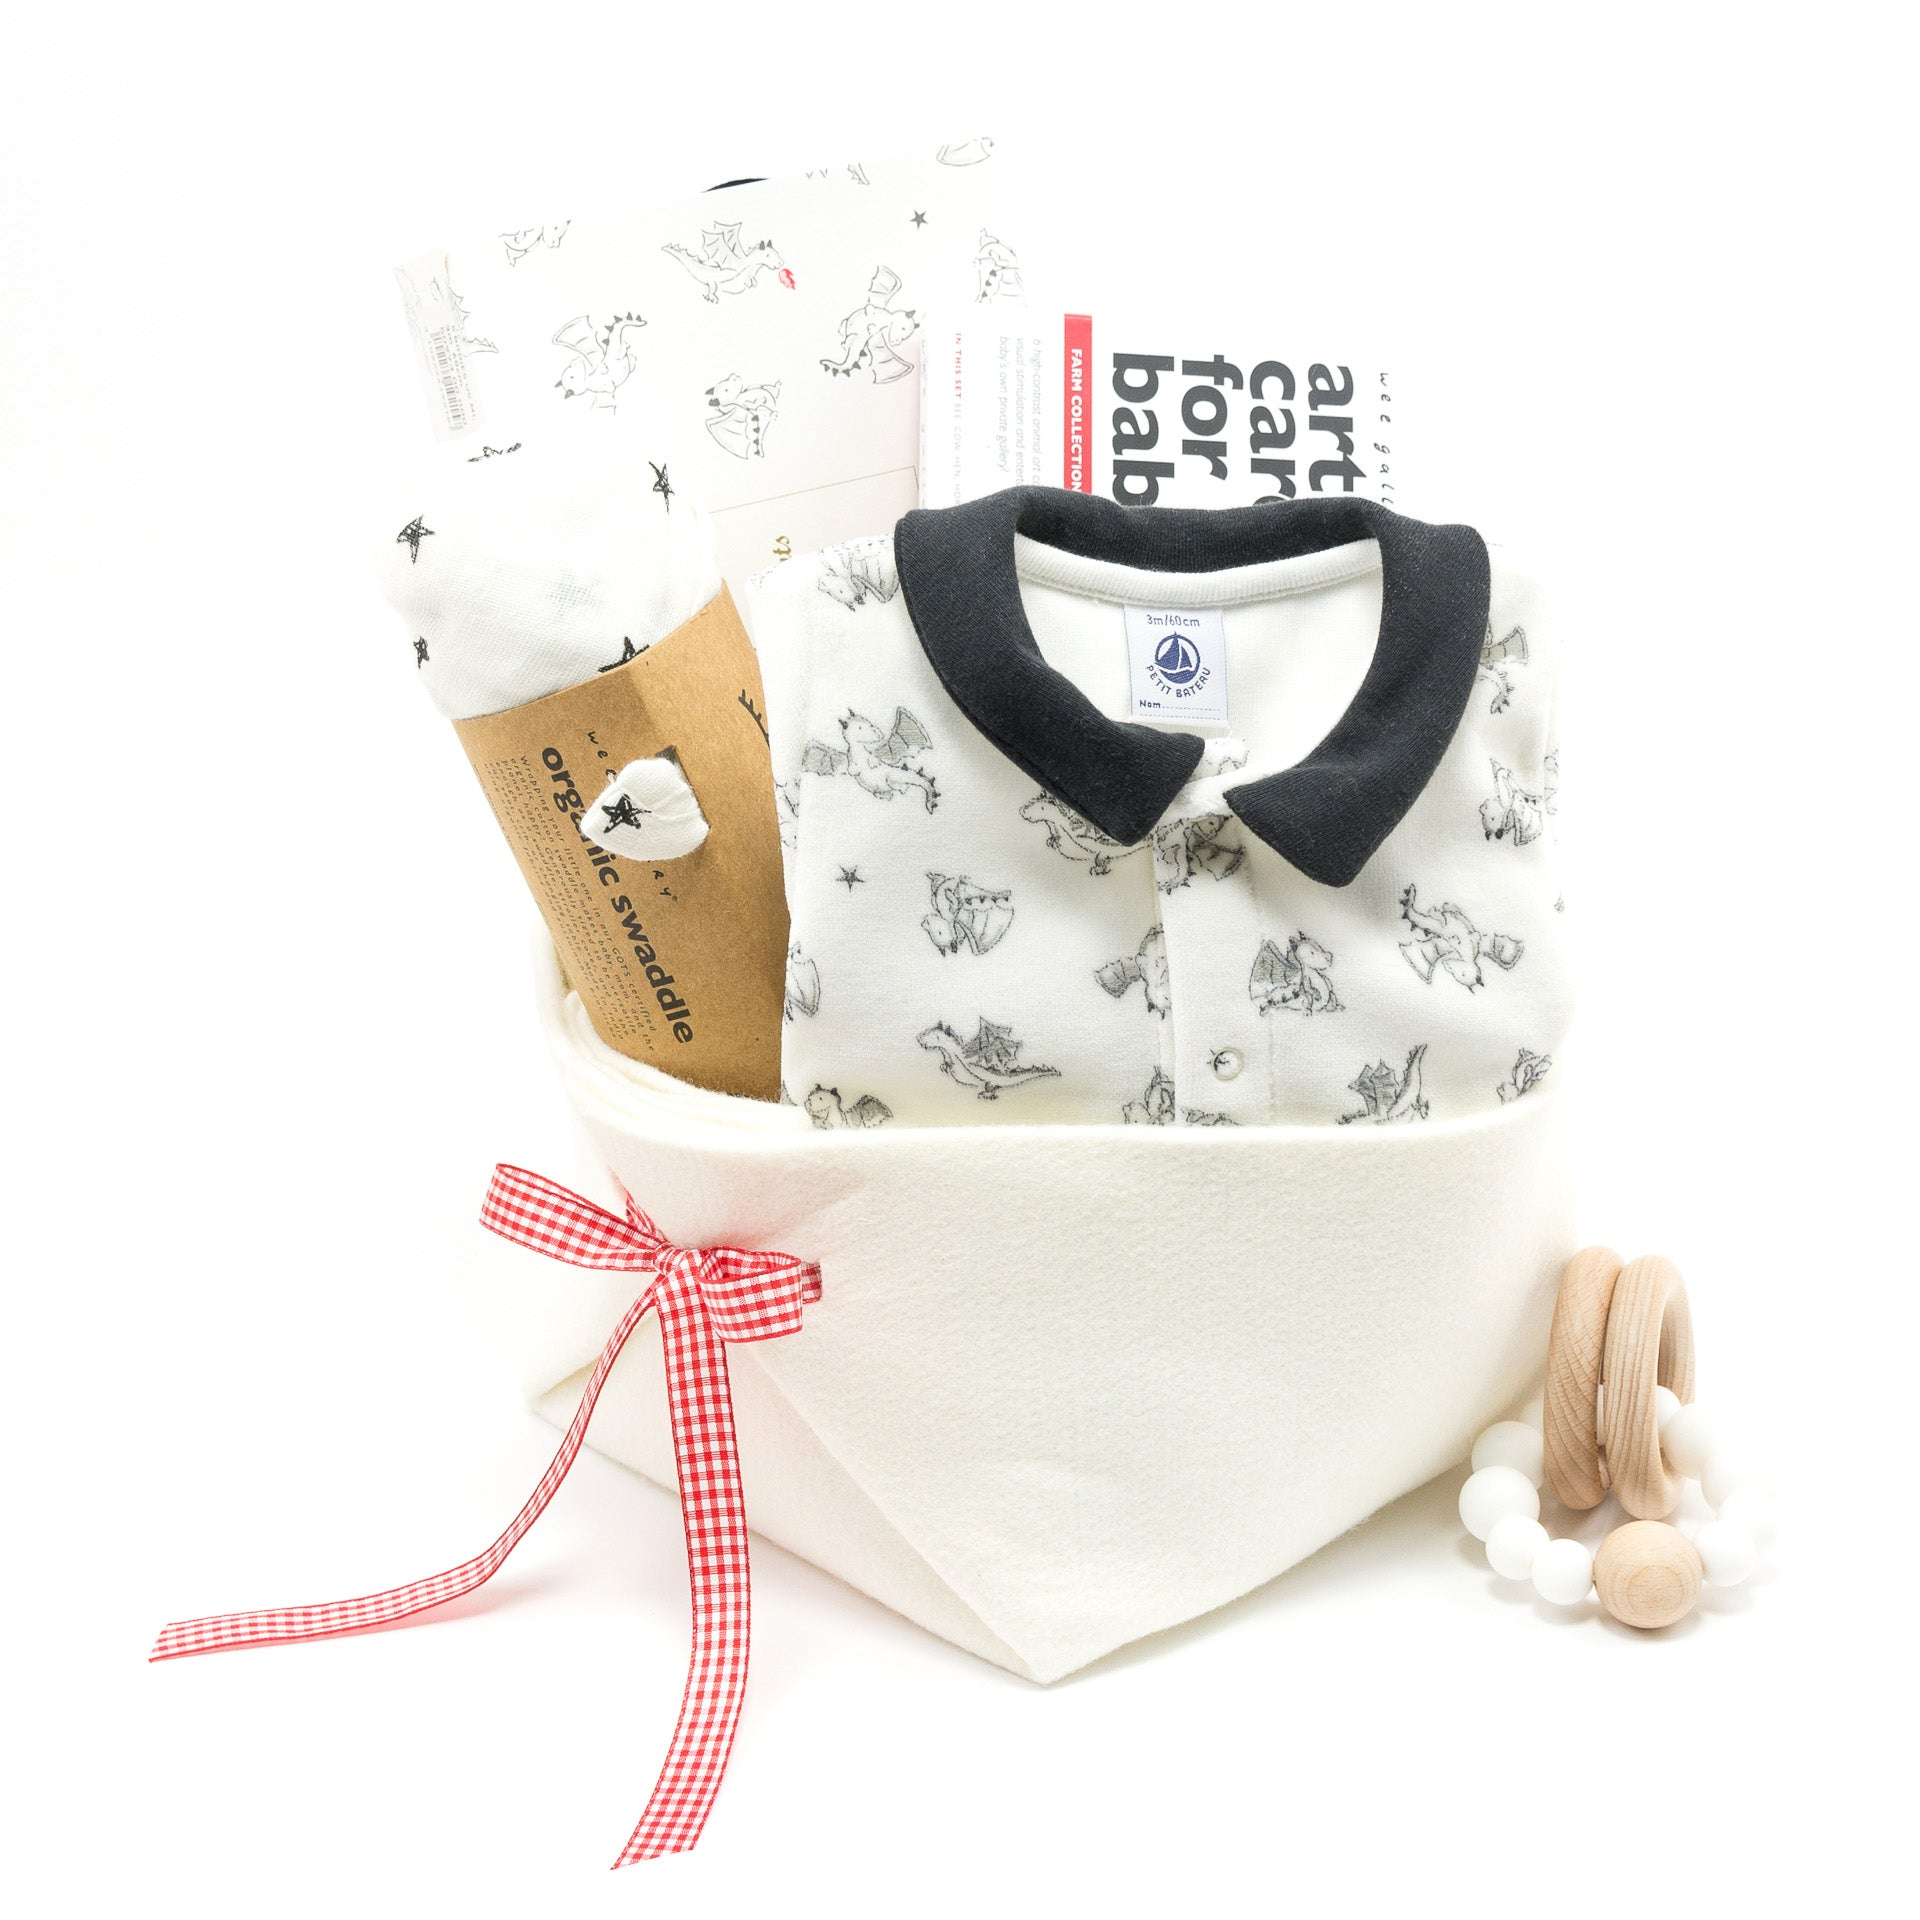 Baby Gift Basket with dragons featuring Petit Bateau, great Corporate Baby Gift